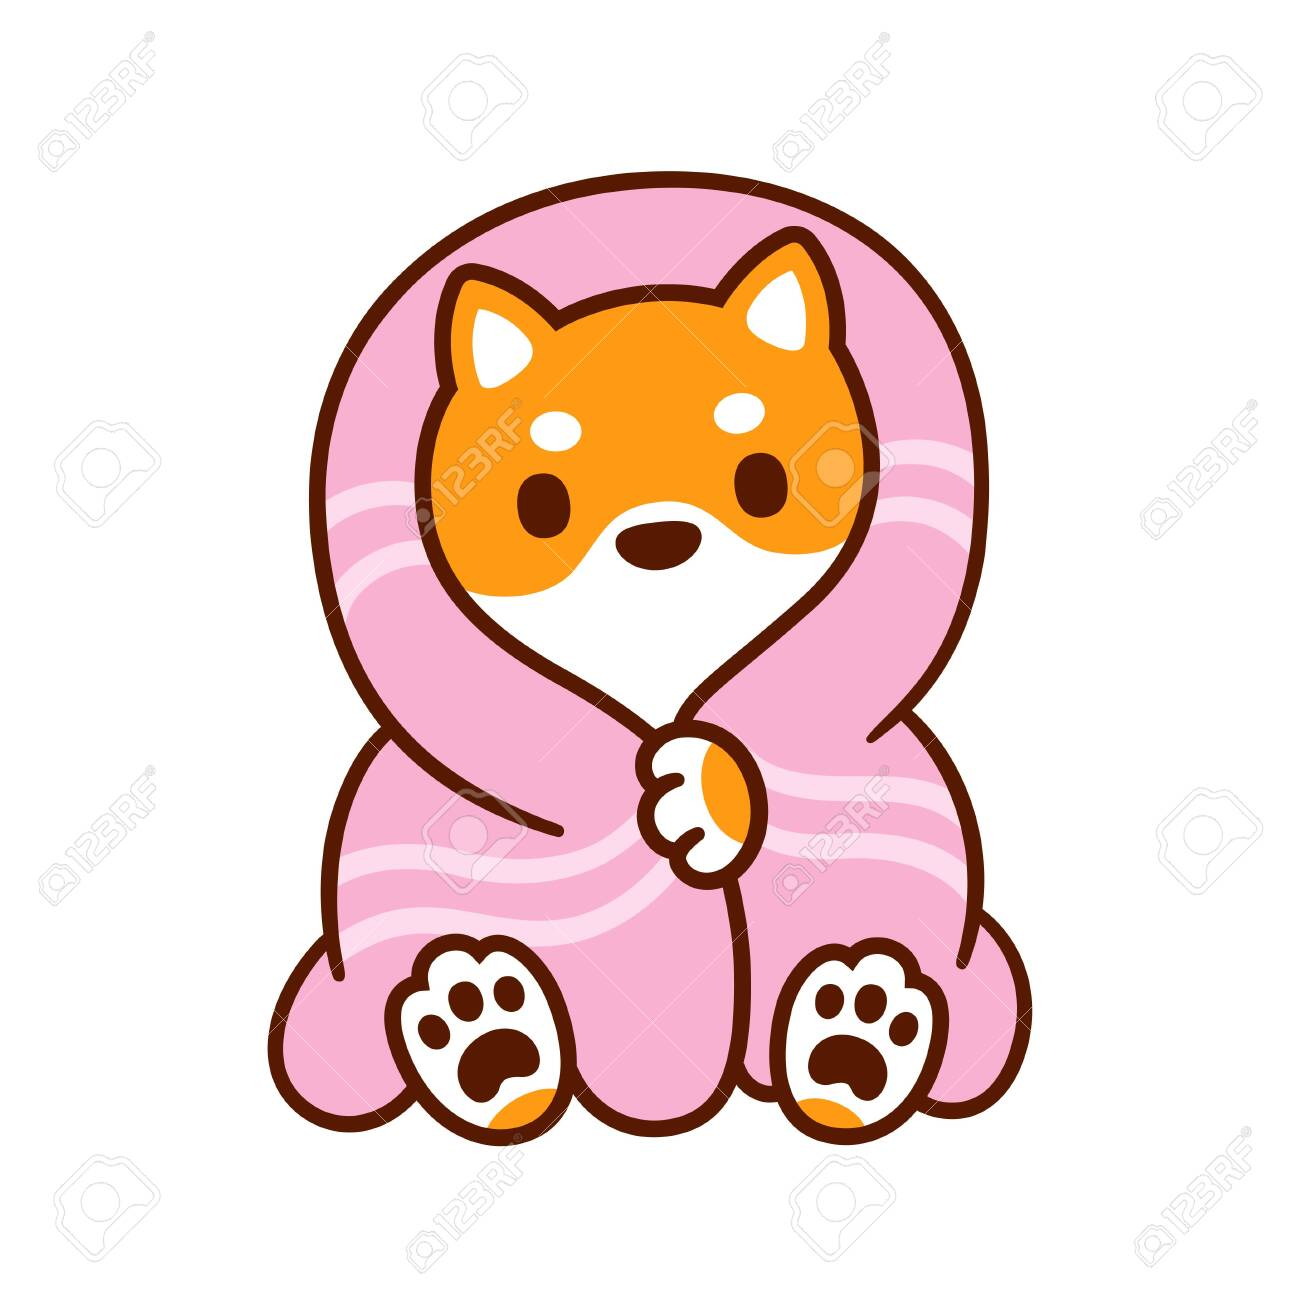 Cute Cartoon Dog With Blanket Kawaii Shiba Inu Puppy In Warm Royalty Free Cliparts Vectors And Stock Illustration Image 134574062